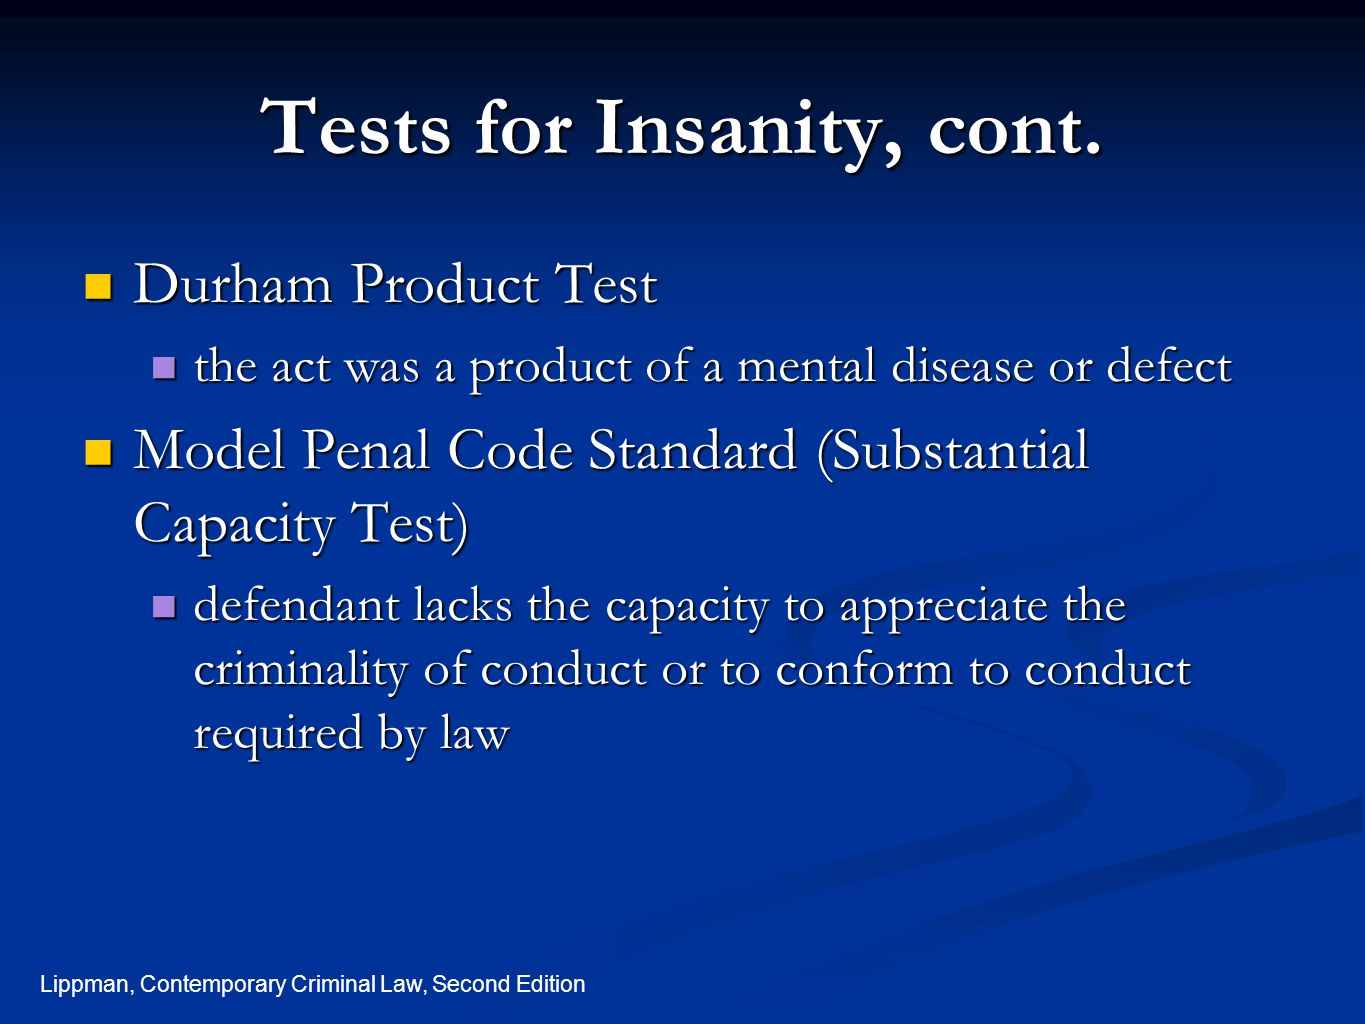 Tests for Insanity, cont.